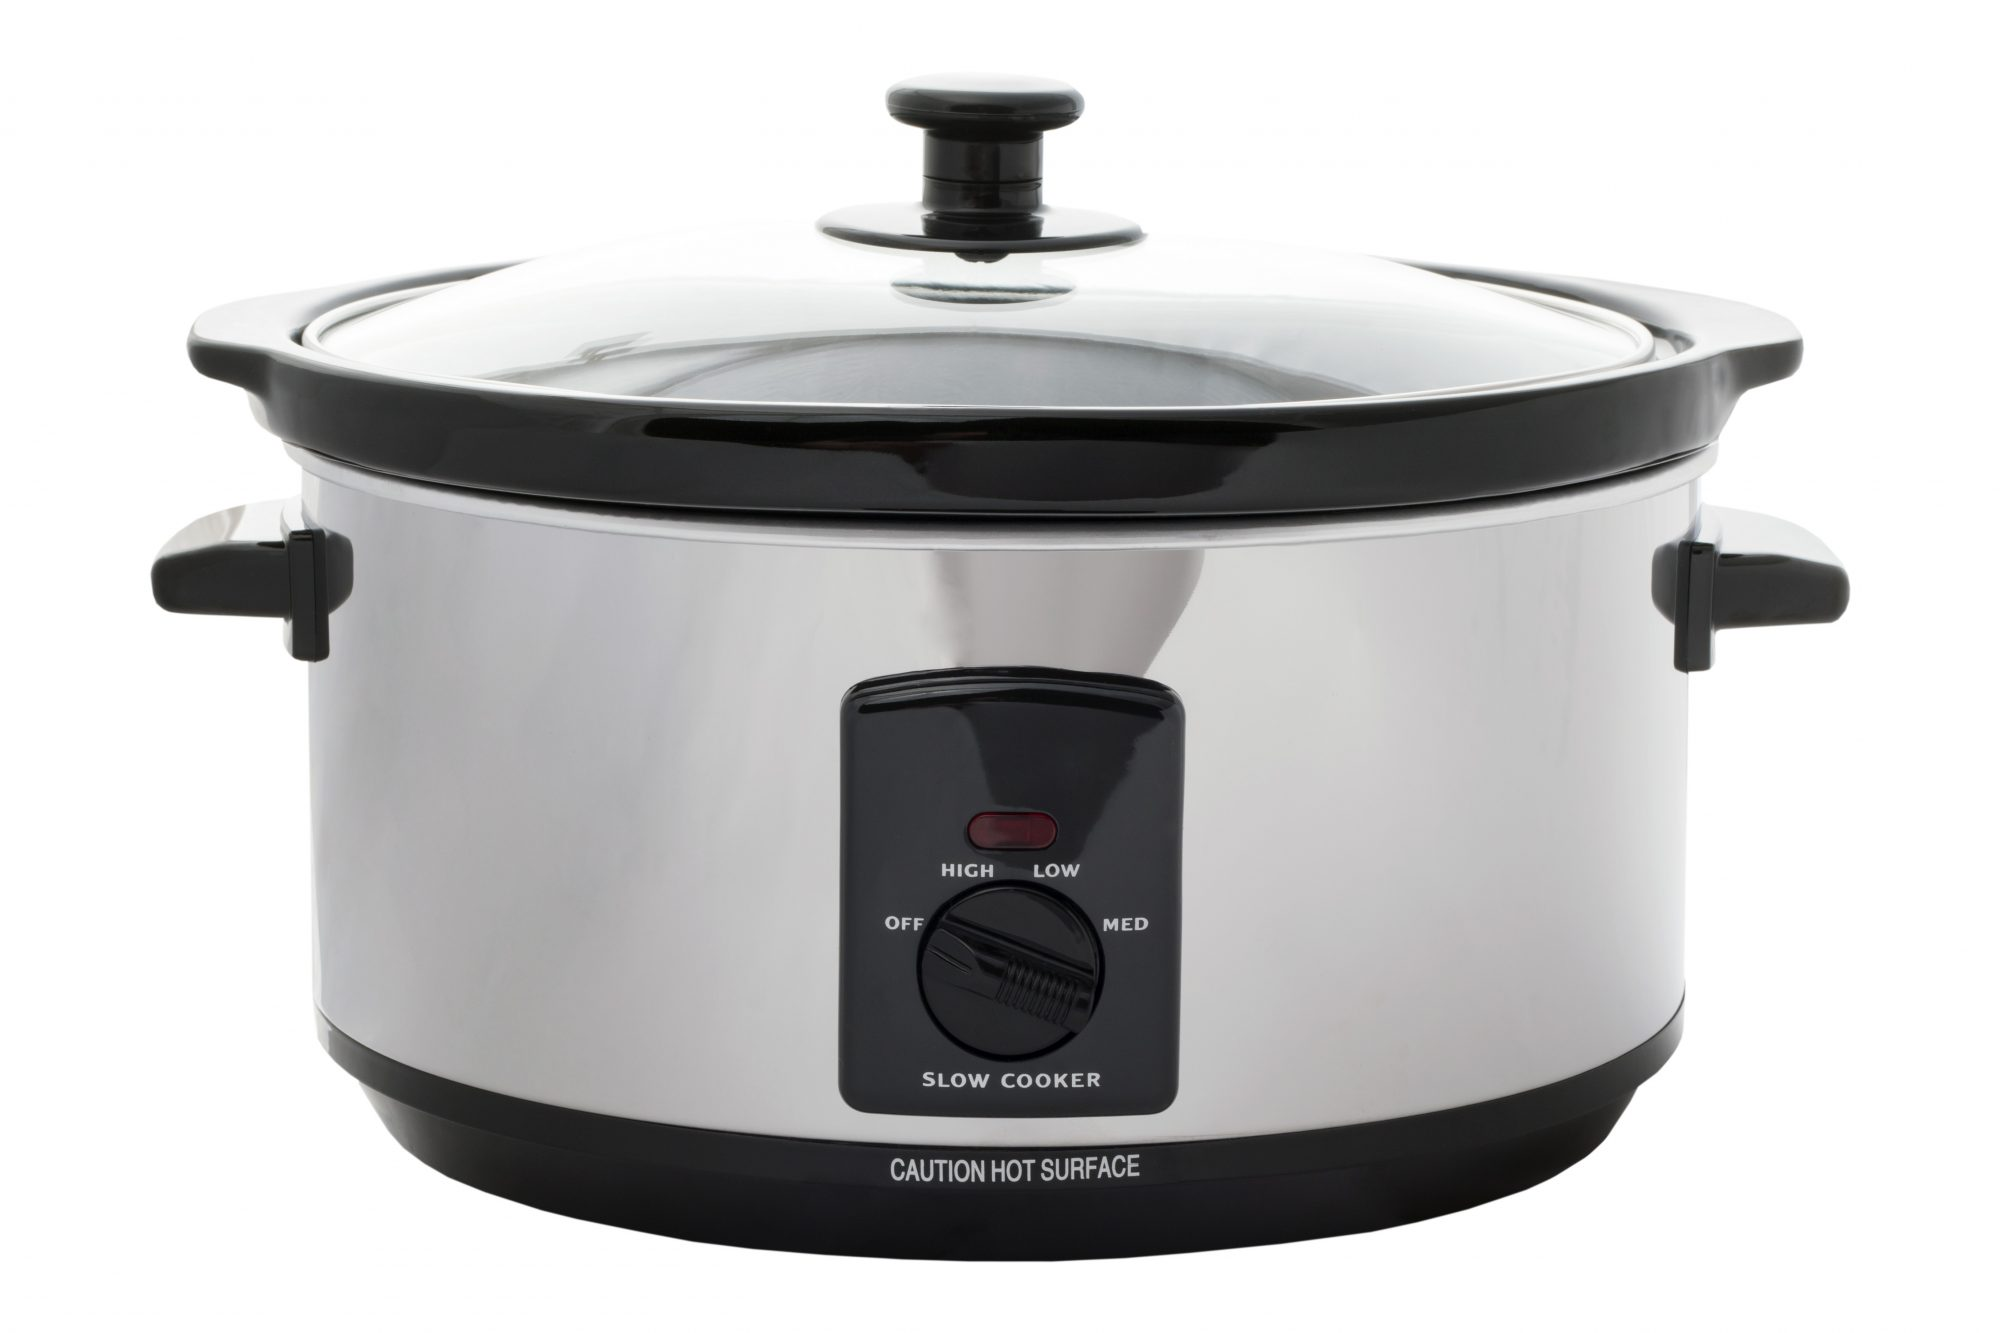 getty-slow-cooker-image